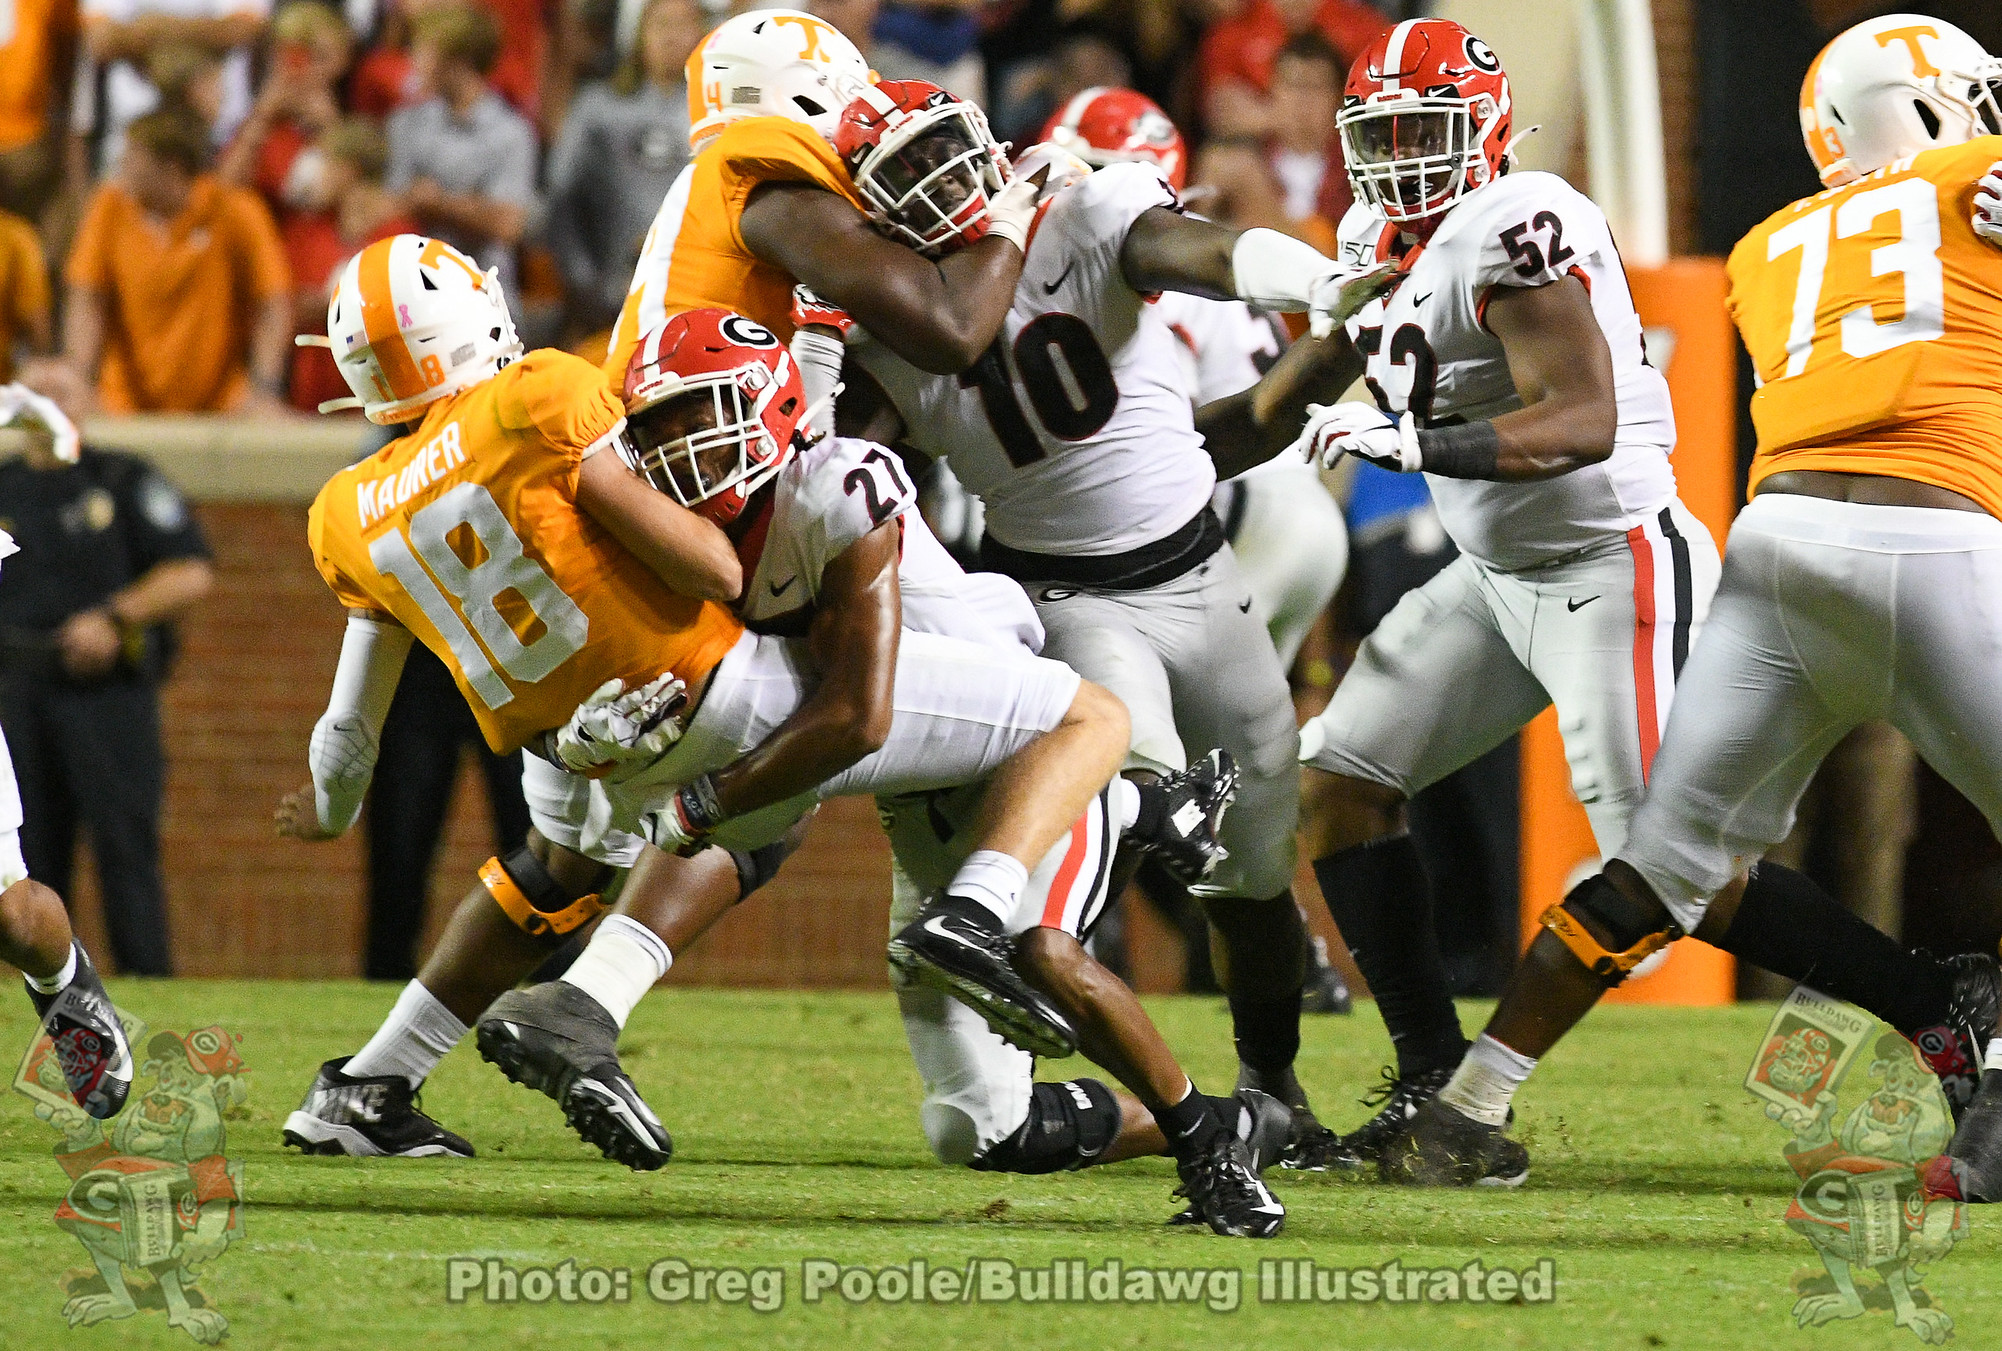 Eric Stokes (27) with the sack